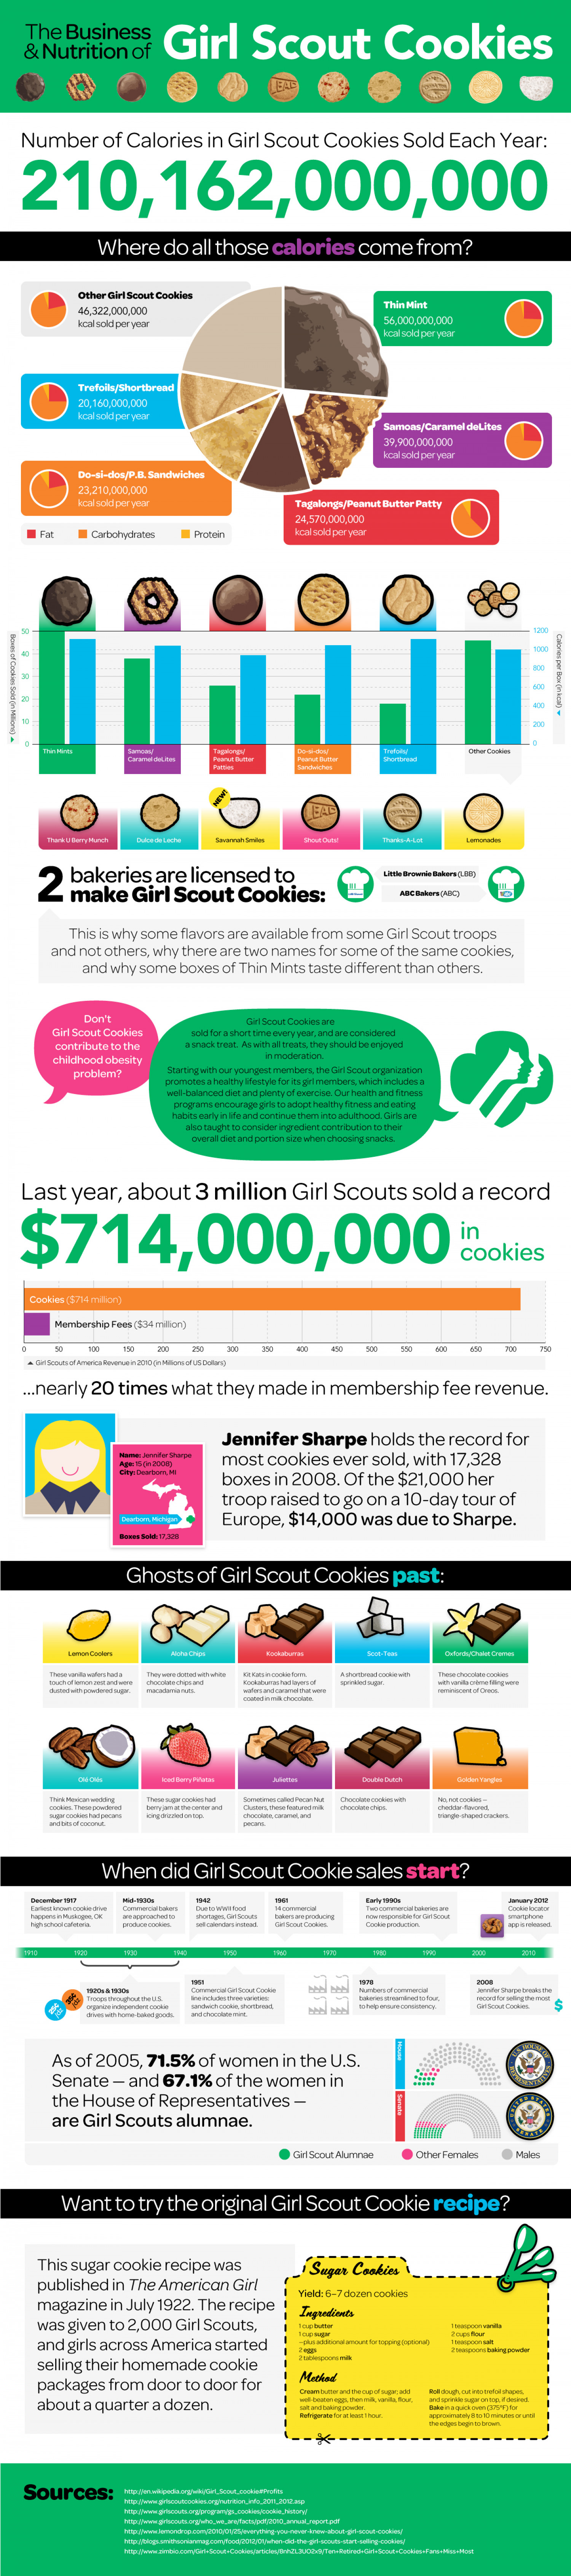 The Business of Girl Scout Cookies Infographic